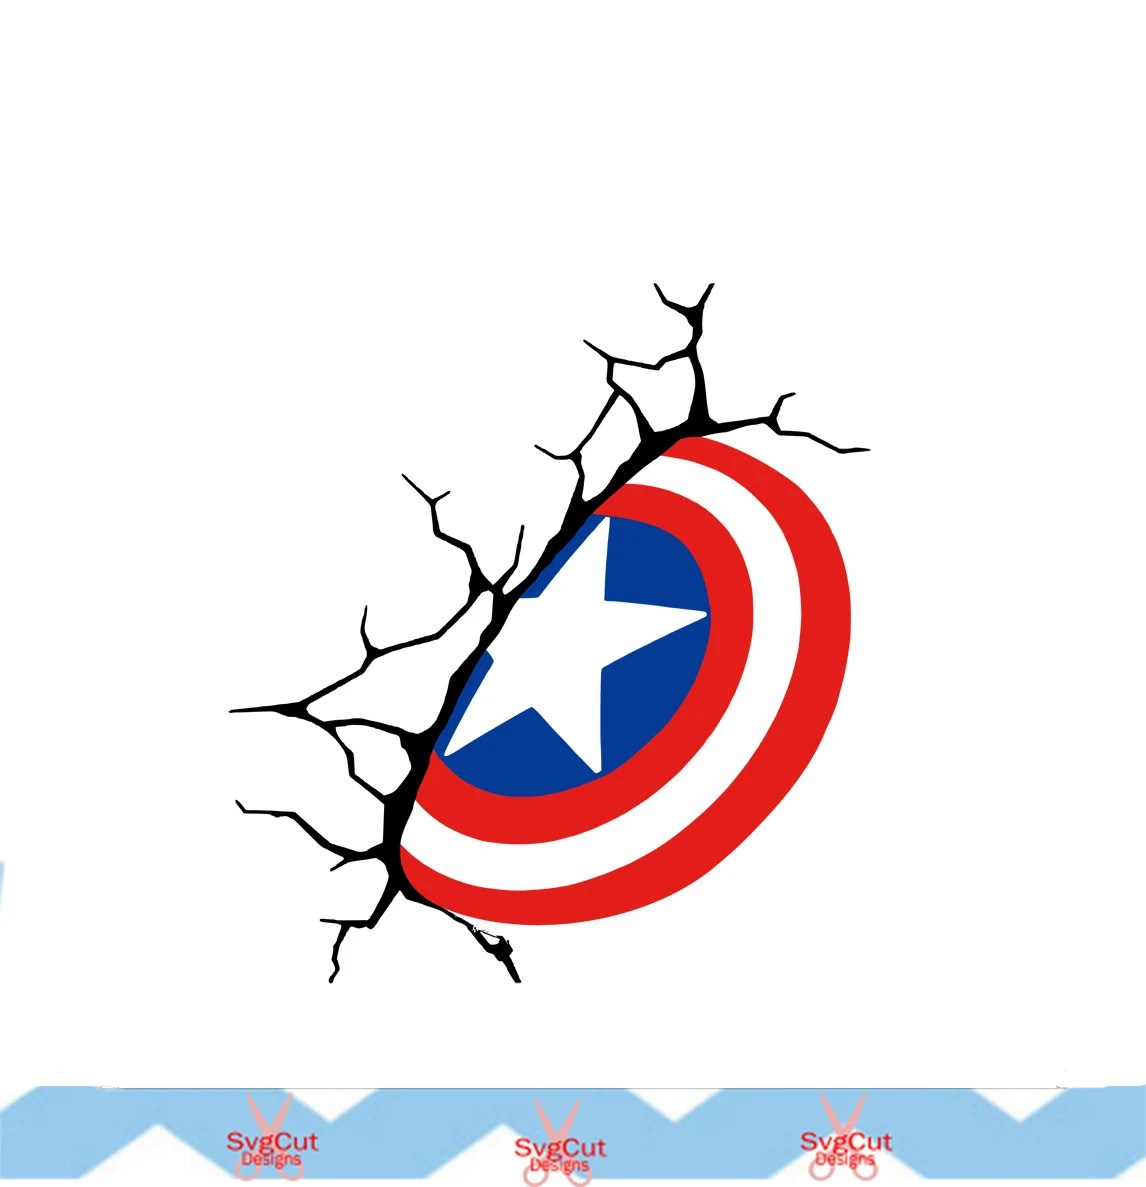 captain america svg captain america wedding band Captain America shield super hero digital download Svg Cuttable Design in SVG Eps DXF png Cricut Design Space Silhouette Cameo